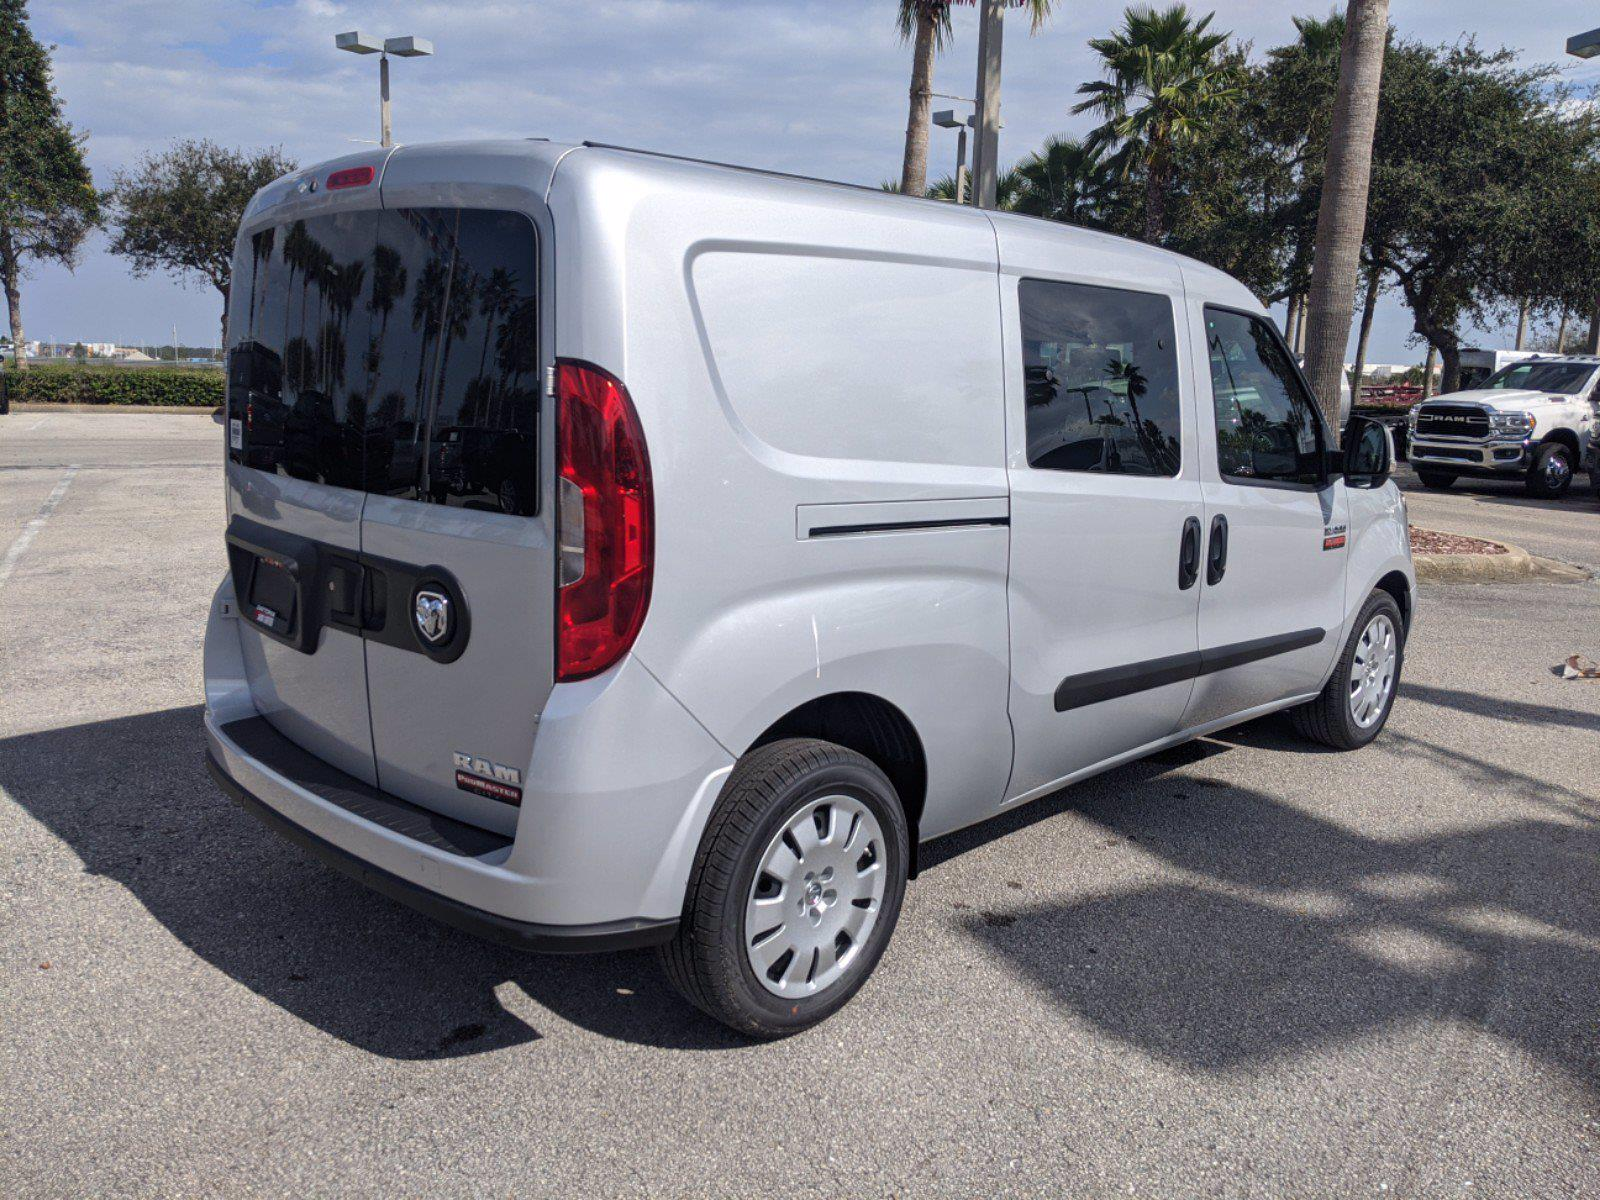 2021 Ram ProMaster City FWD, Passenger Wagon #R21180 - photo 1